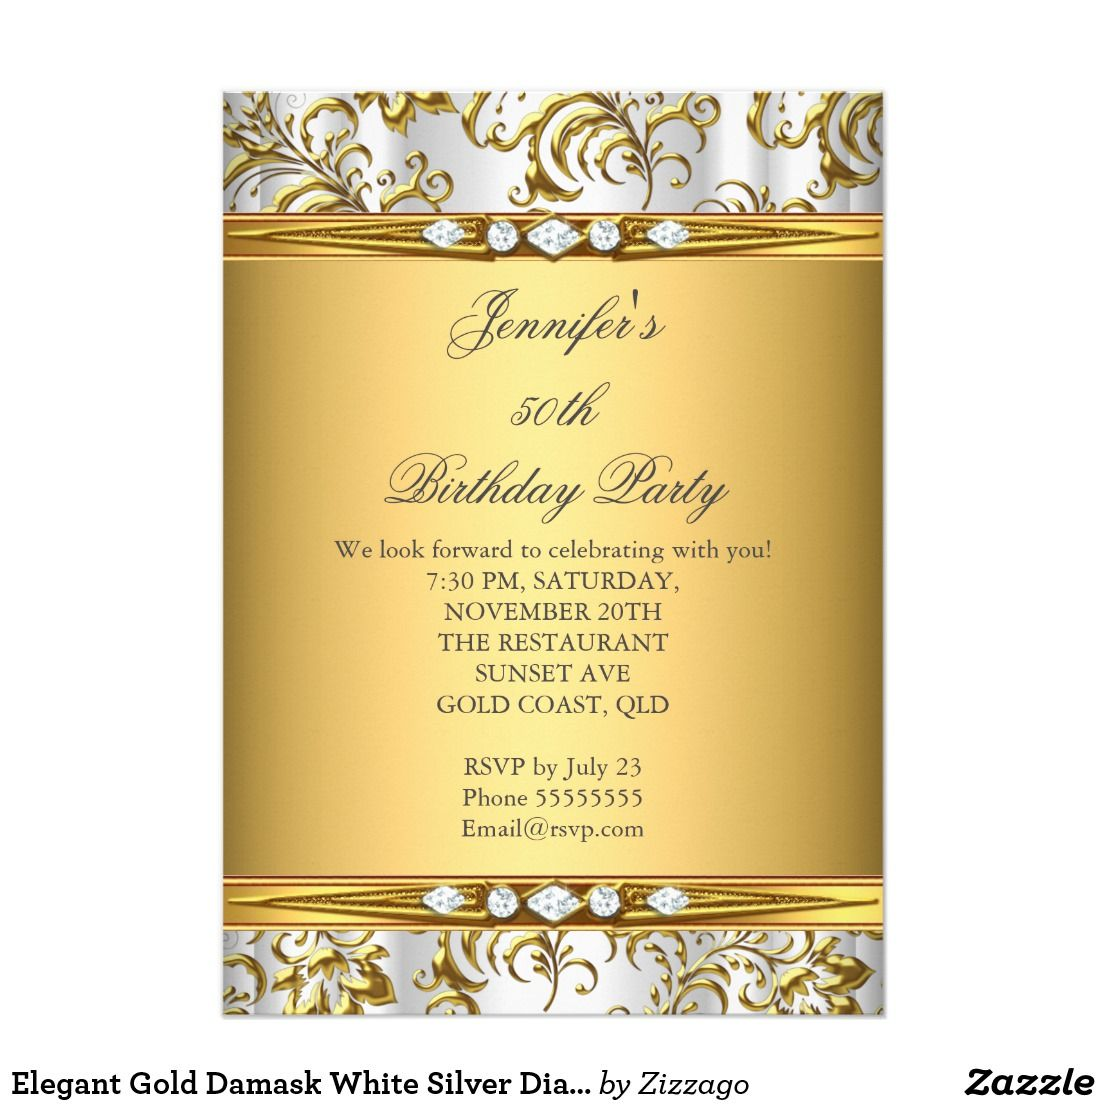 Elegant Gold Damask White Silver Diamond Birthday Card Elegant Gold Floral Damask and Silver Silk White Diamond Birthday Party Gold woman's Girl. Invitation Formal. Use for any event invitation. Customize to change age and details. Customize with your own details and age. Template for Sweet 16, 16th, Quinceanera 15th, 18th, 20th, 21st, 30th, 40th, 50th, 60th, 70th, 80th, 90, 100th, Fabulous product for Adult Women, teen Girls, Zizzago created this design PLEASE NOTE all flat images! They Do…